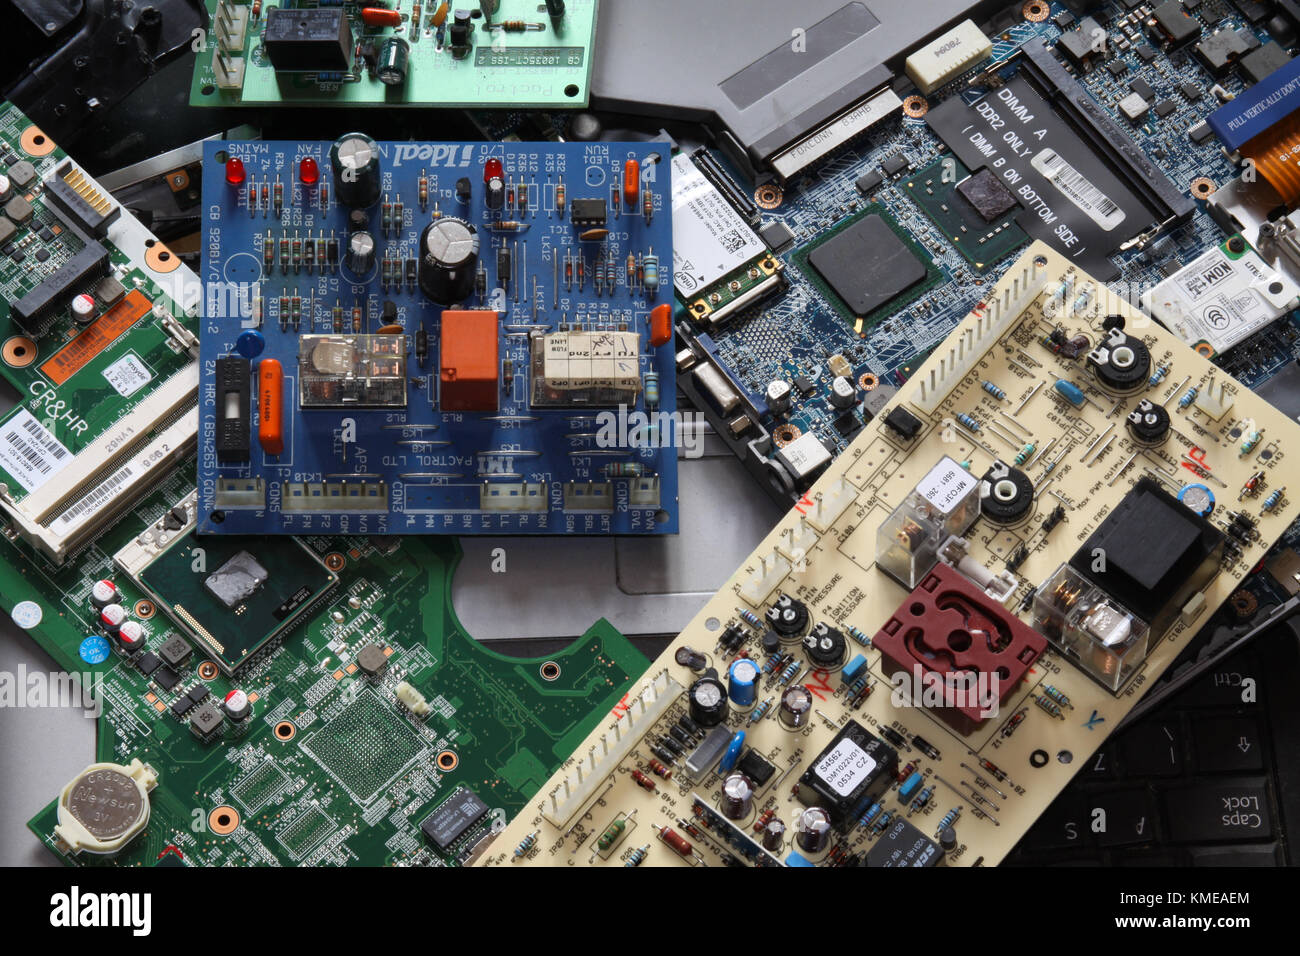 E Scrap Stock Photos Images Alamy Cell Phone Circuit Boards Motherboards Lot Of 9 Escrap Supplies For Waste And Computers Uk Image